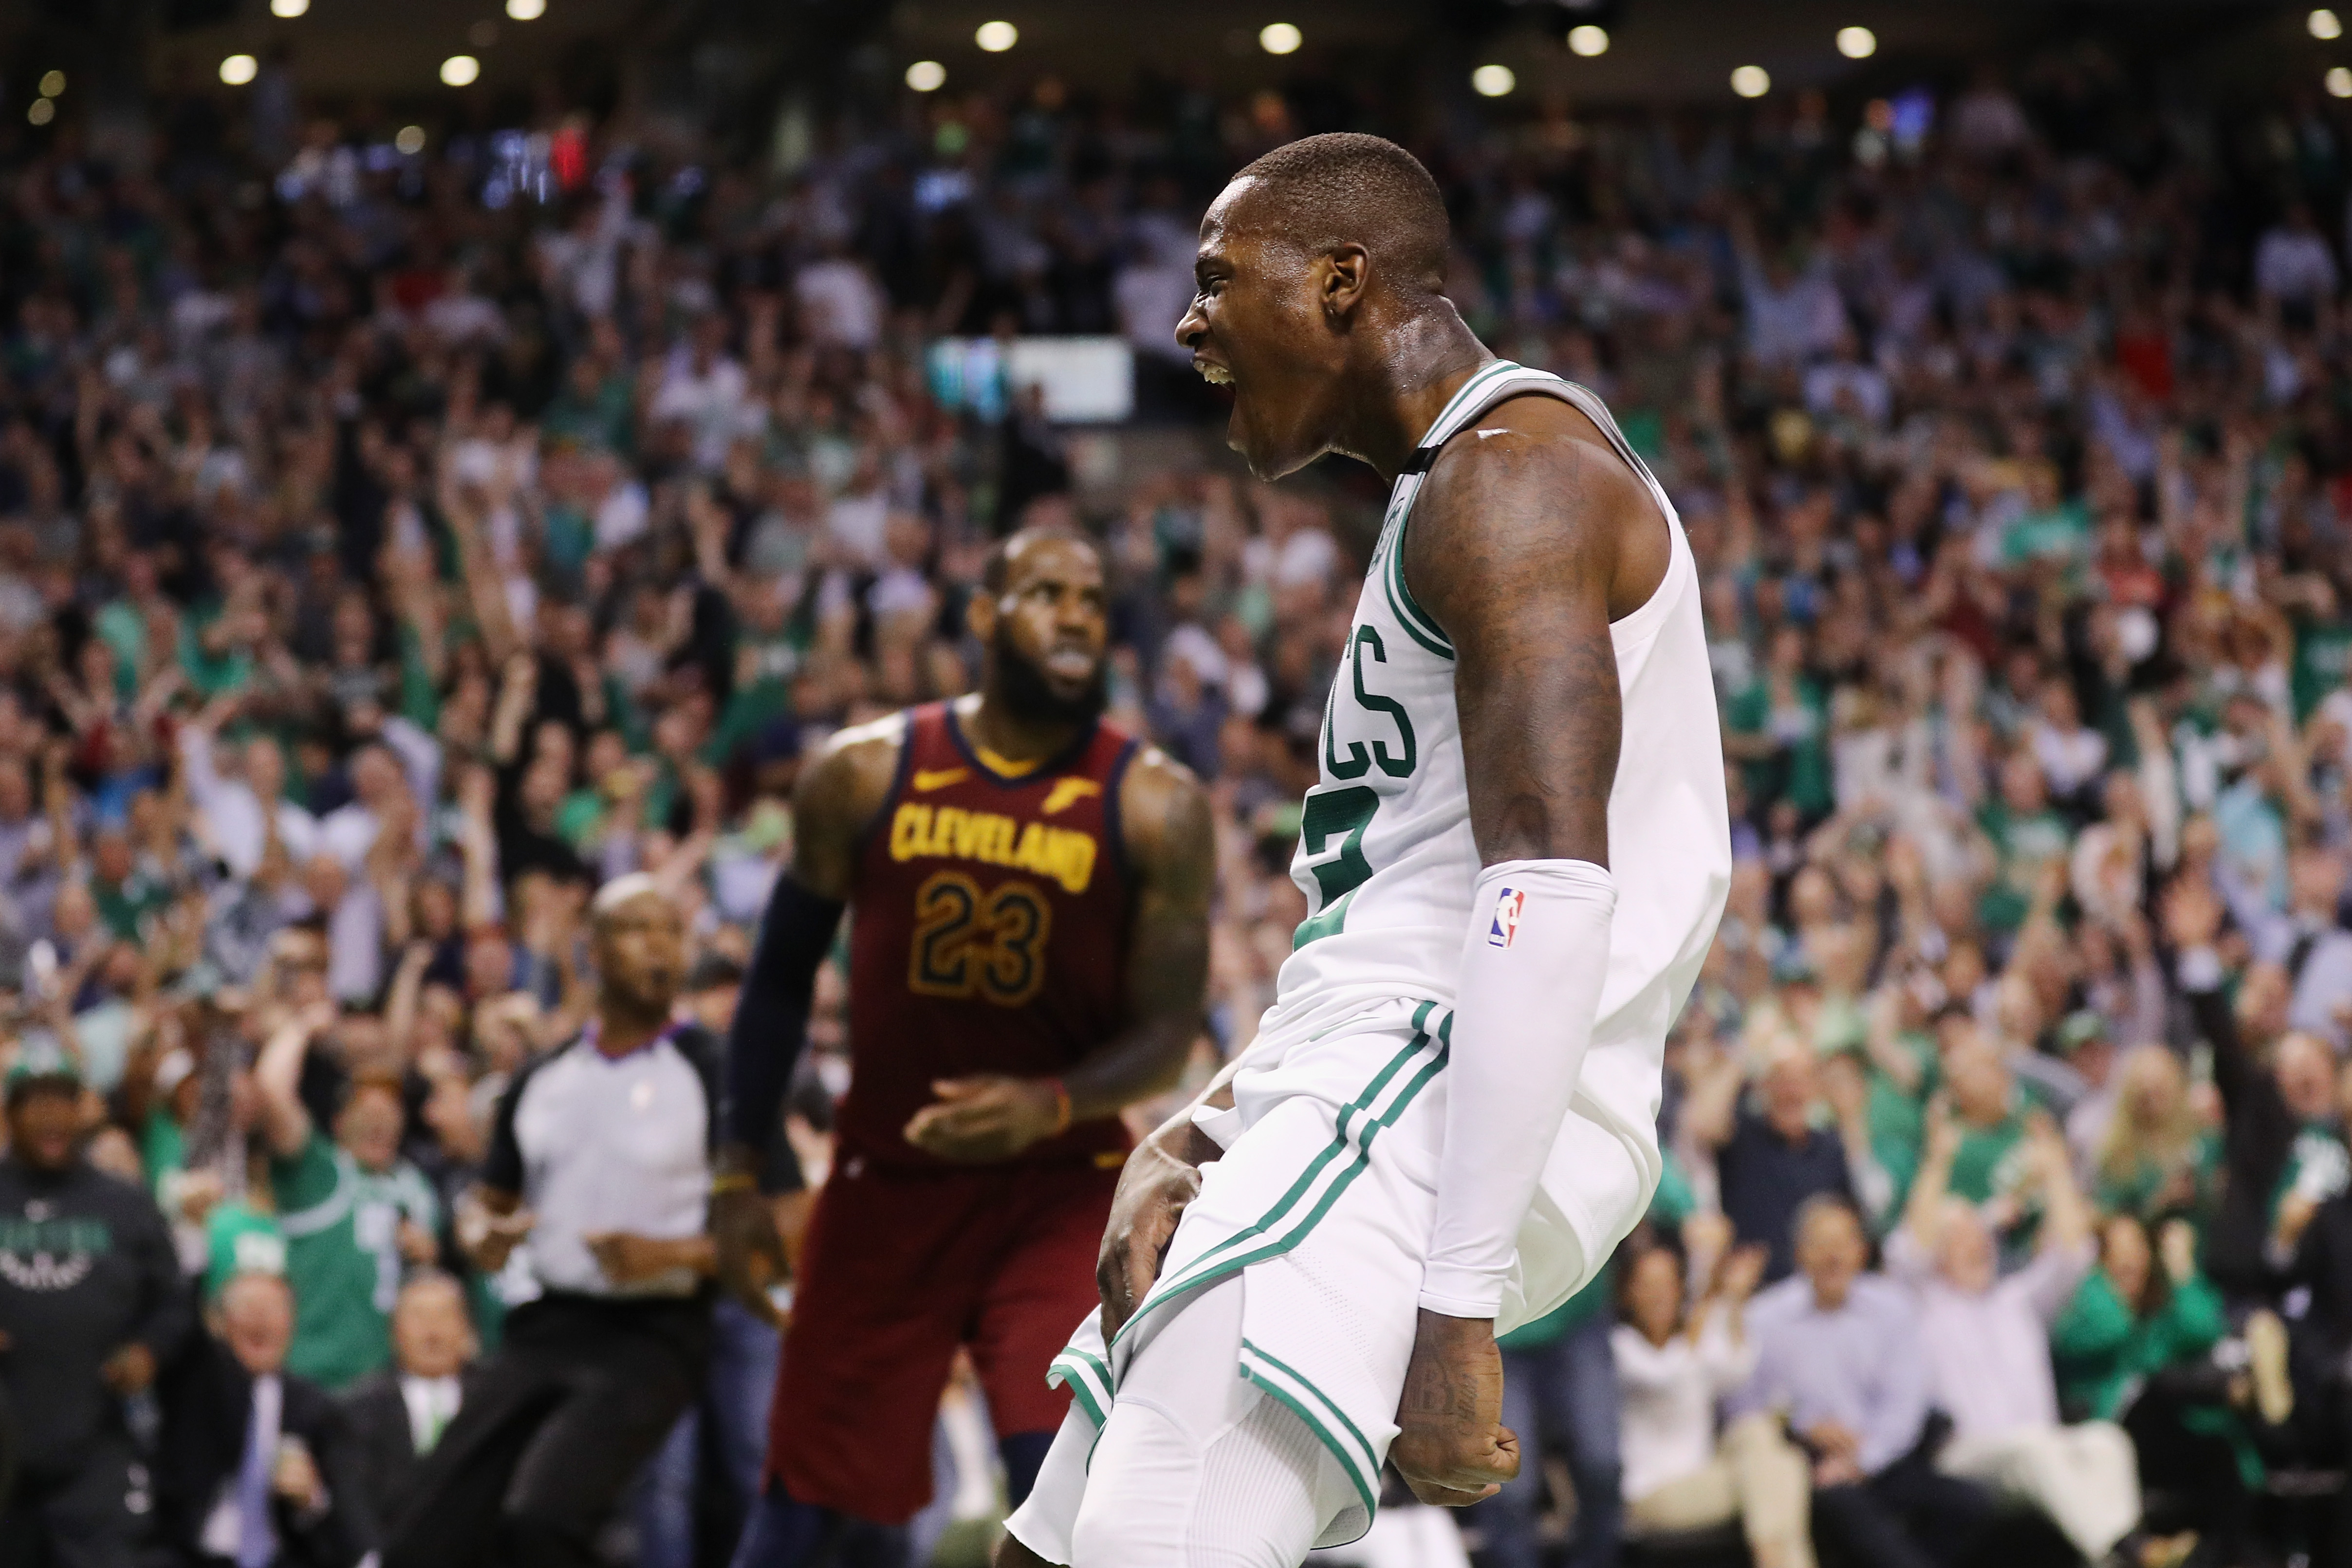 Terry Rozier is a reminder that nice surprises still exist in sports